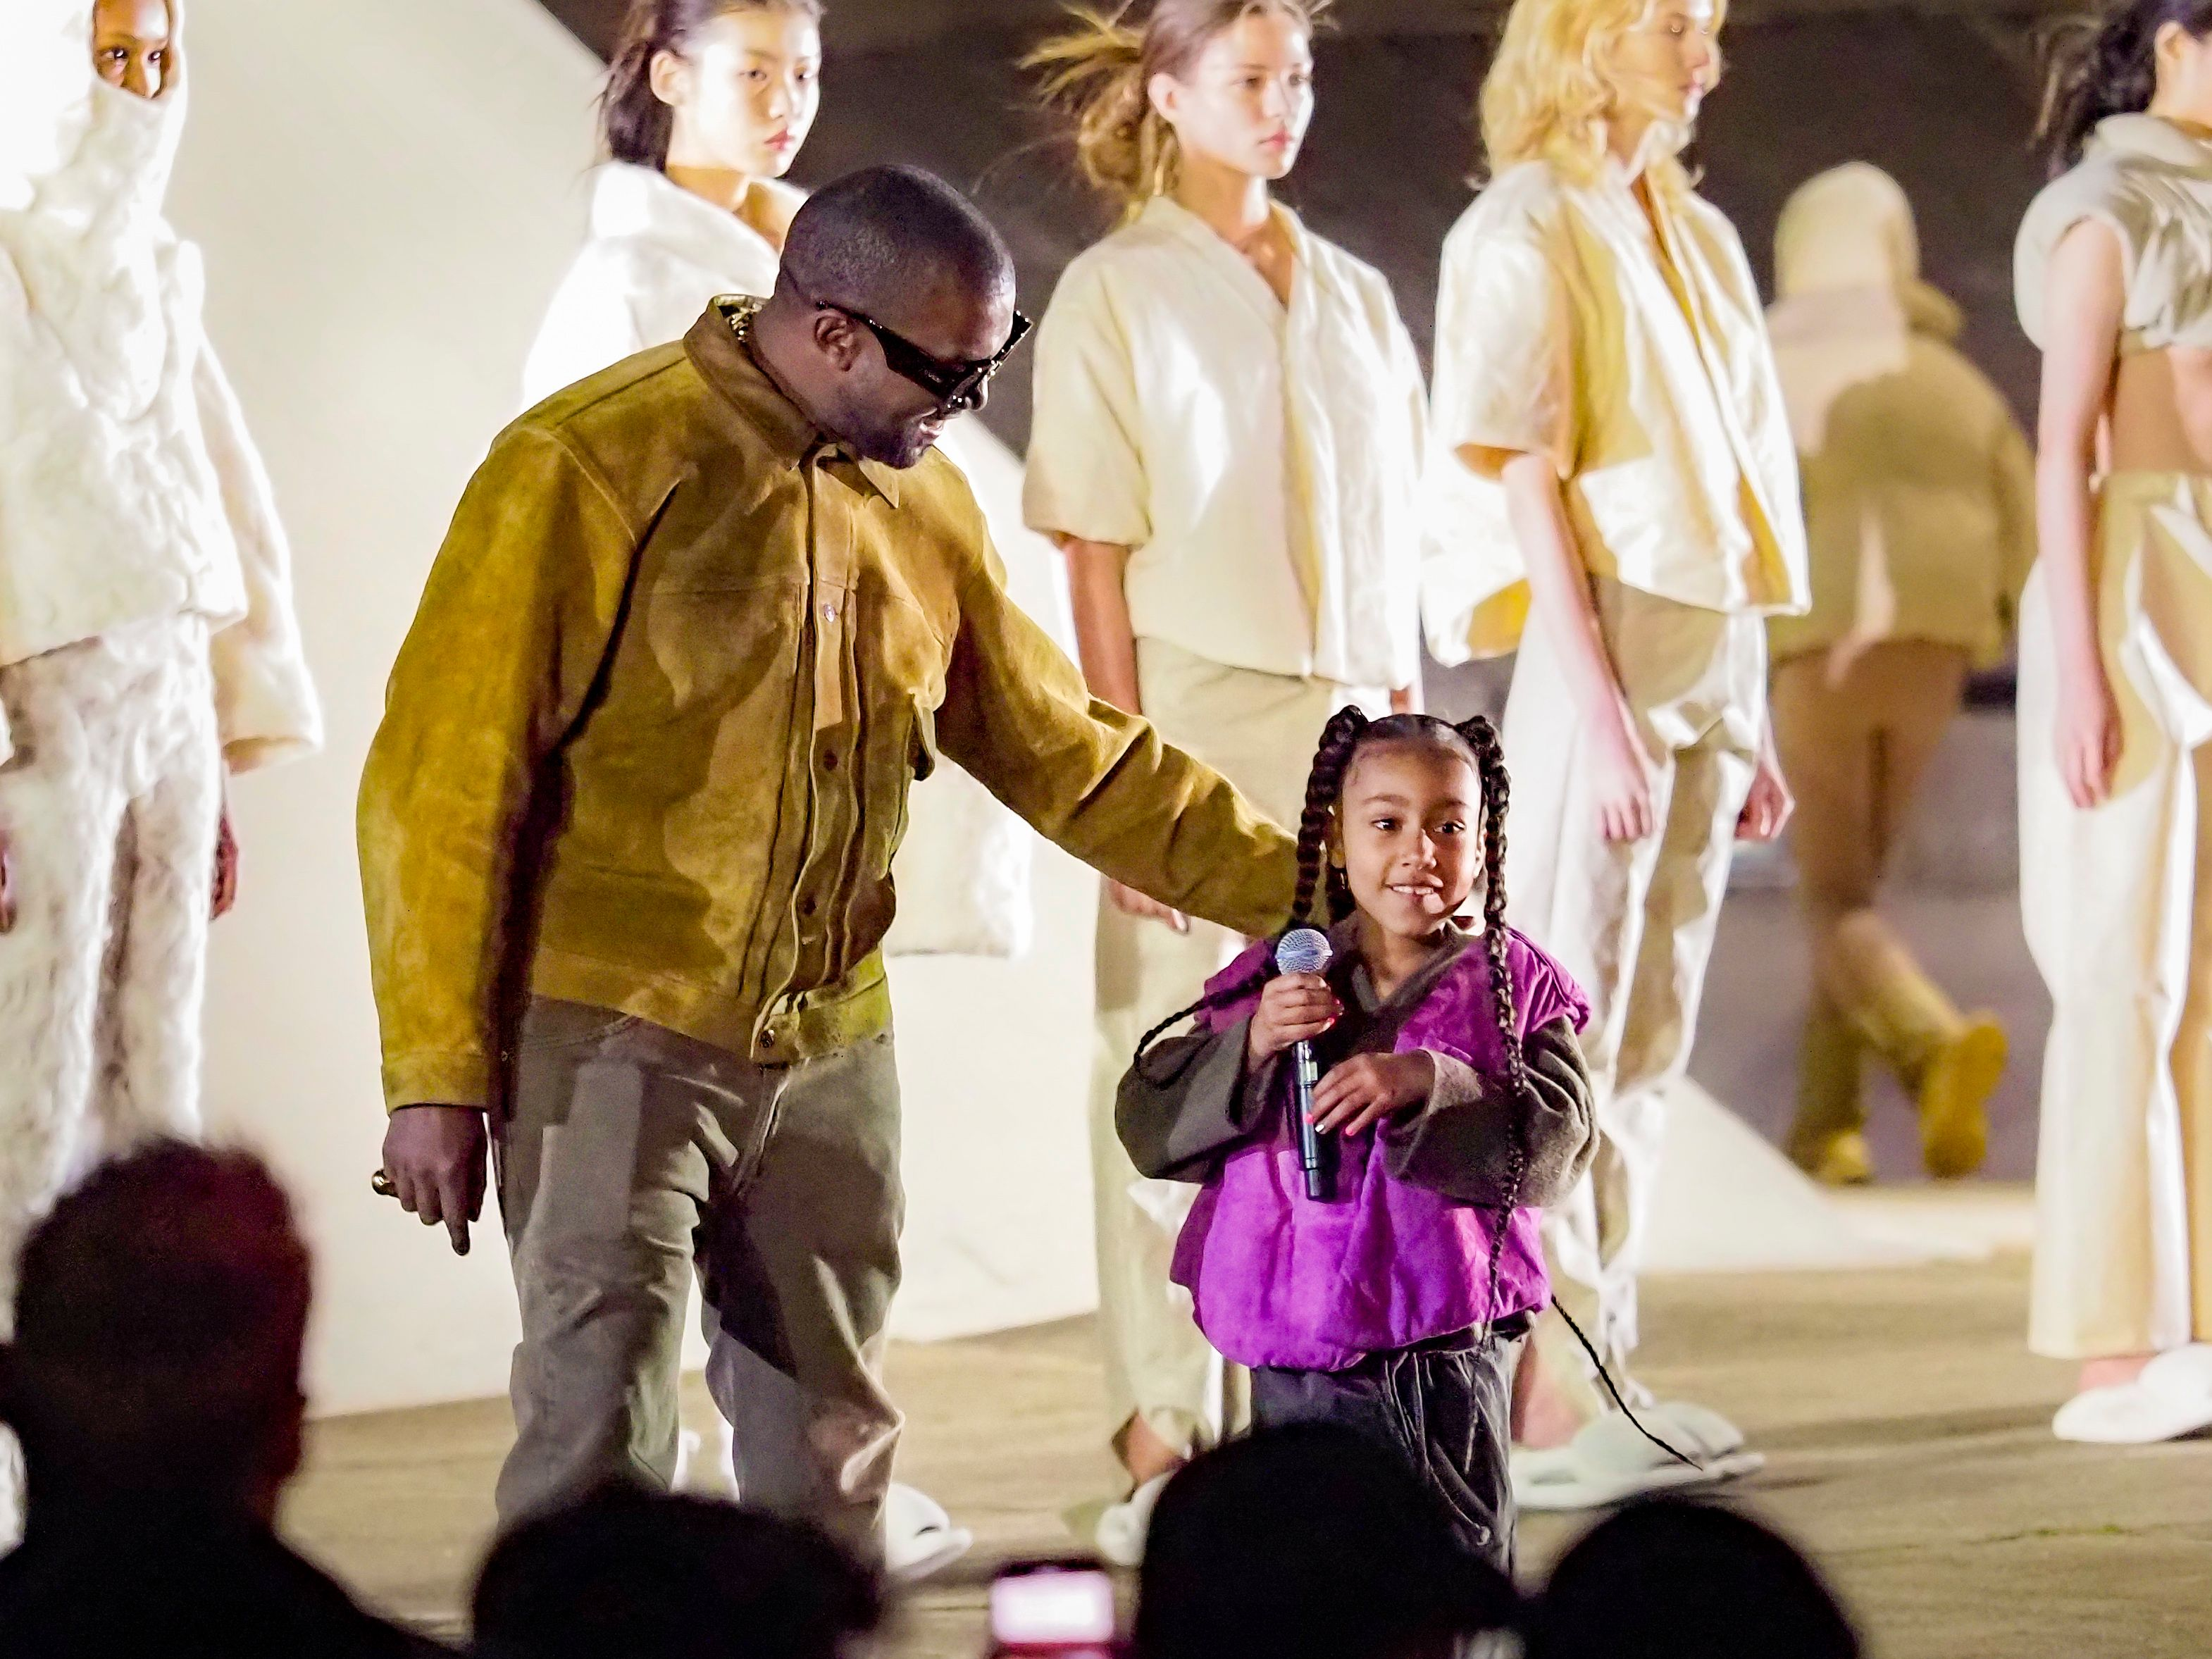 Kanye West and his daughter North on the stage / Getty Images